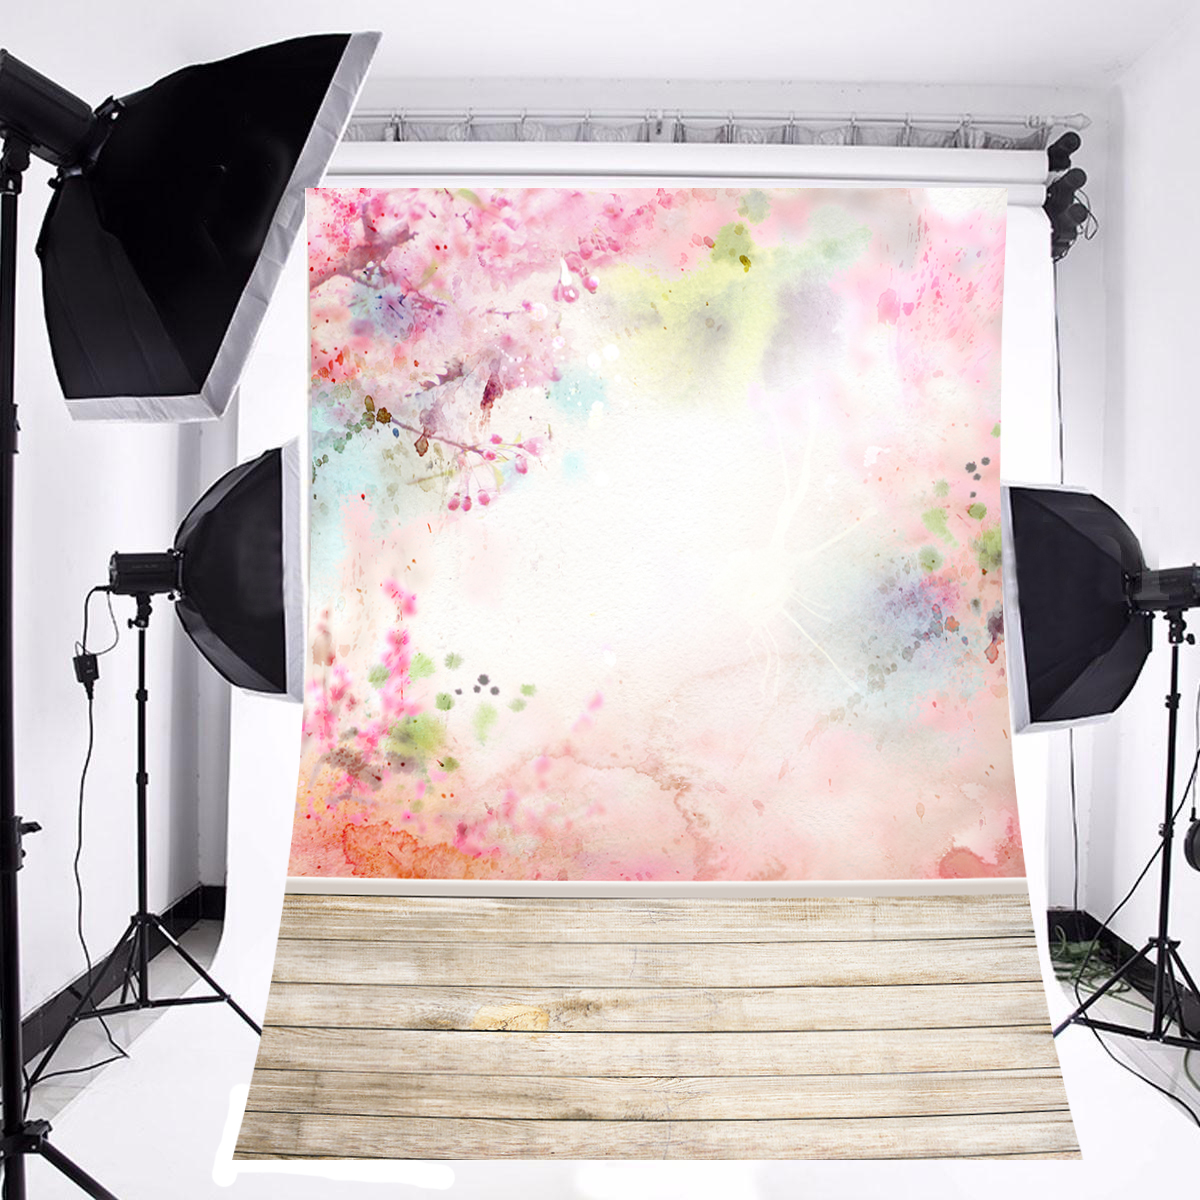 NK HOME Studio Photo Video Photography Backdrop 3x5ft Flower Printer & Floor Fresh Style Grace Elegant Printed Vinyl Fabric Party Decorations Background Screen Props